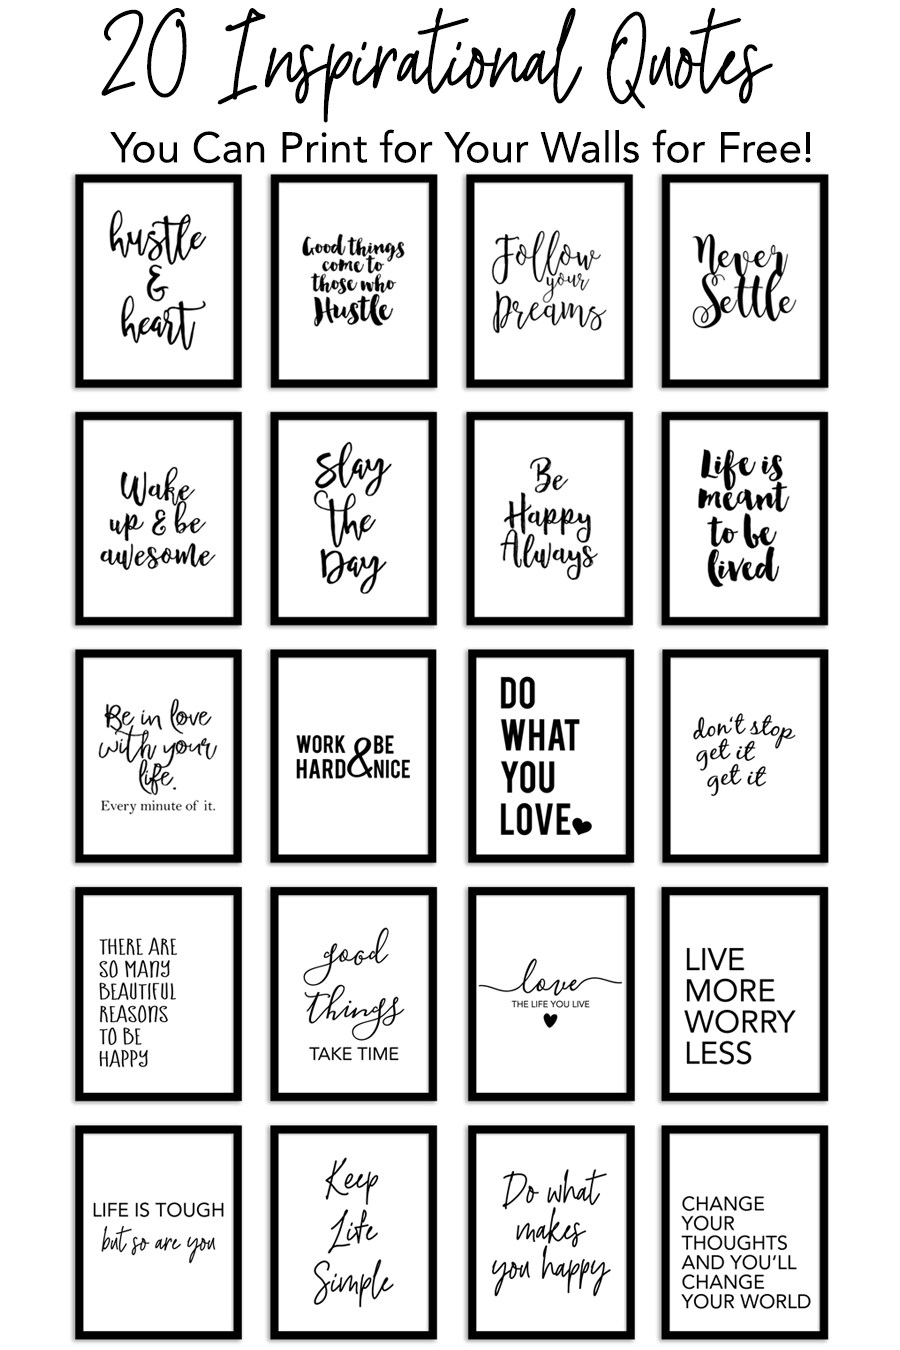 20 Inspirational Quotes You Can Print for Your Walls for Free!